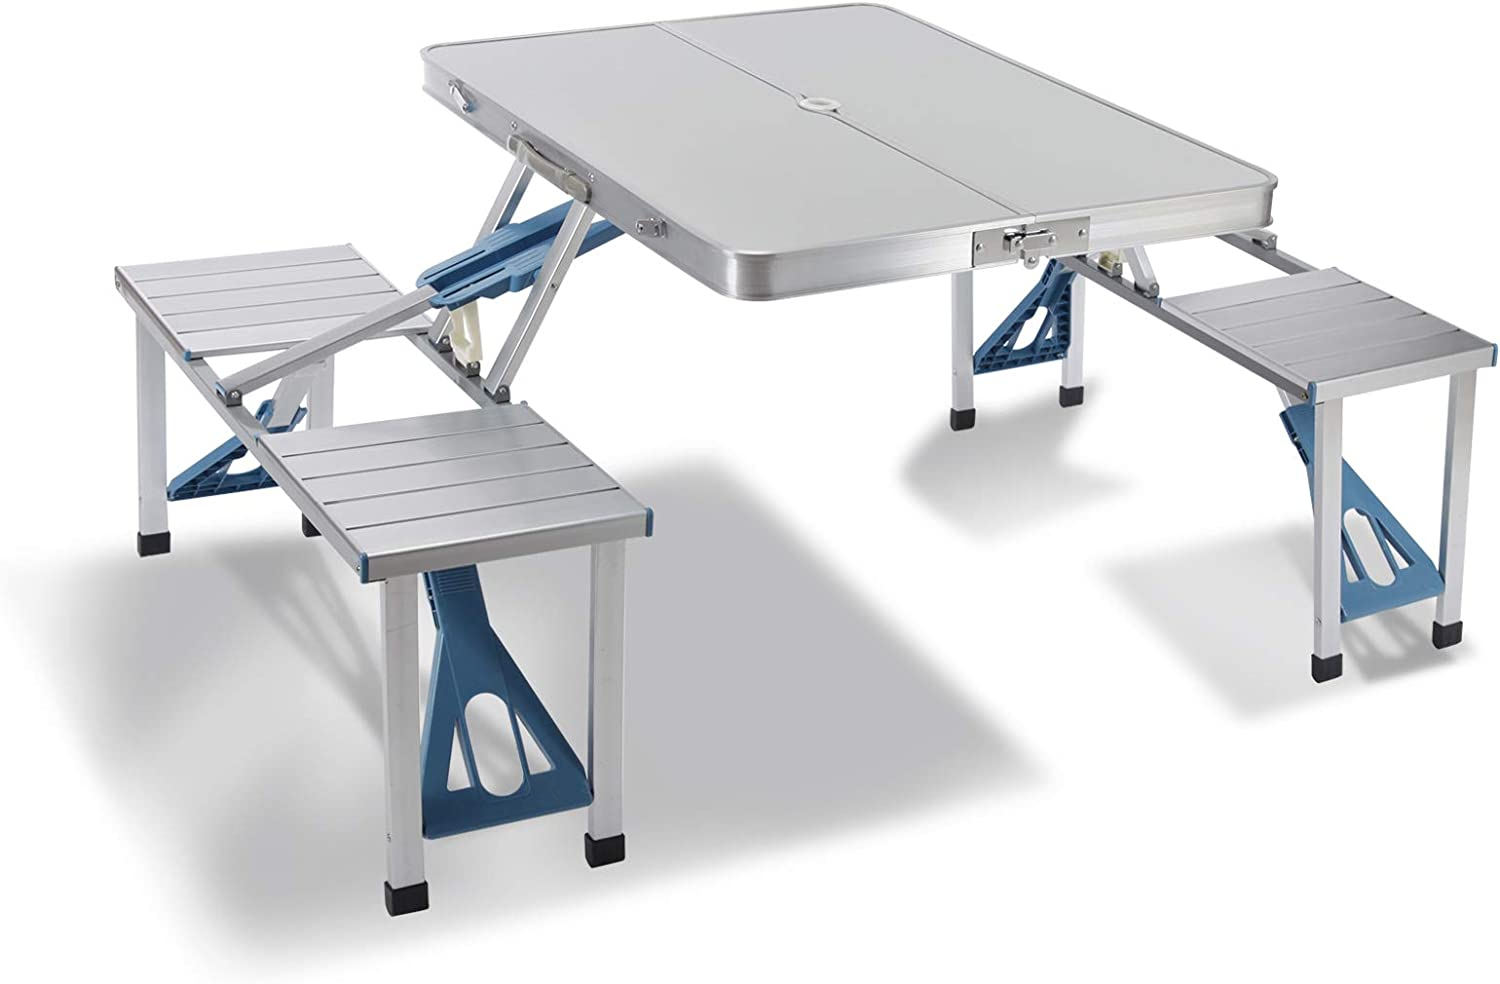 Aluminum Alloy Portable Table Outdoor Foldable Folding Camping Picnic Table